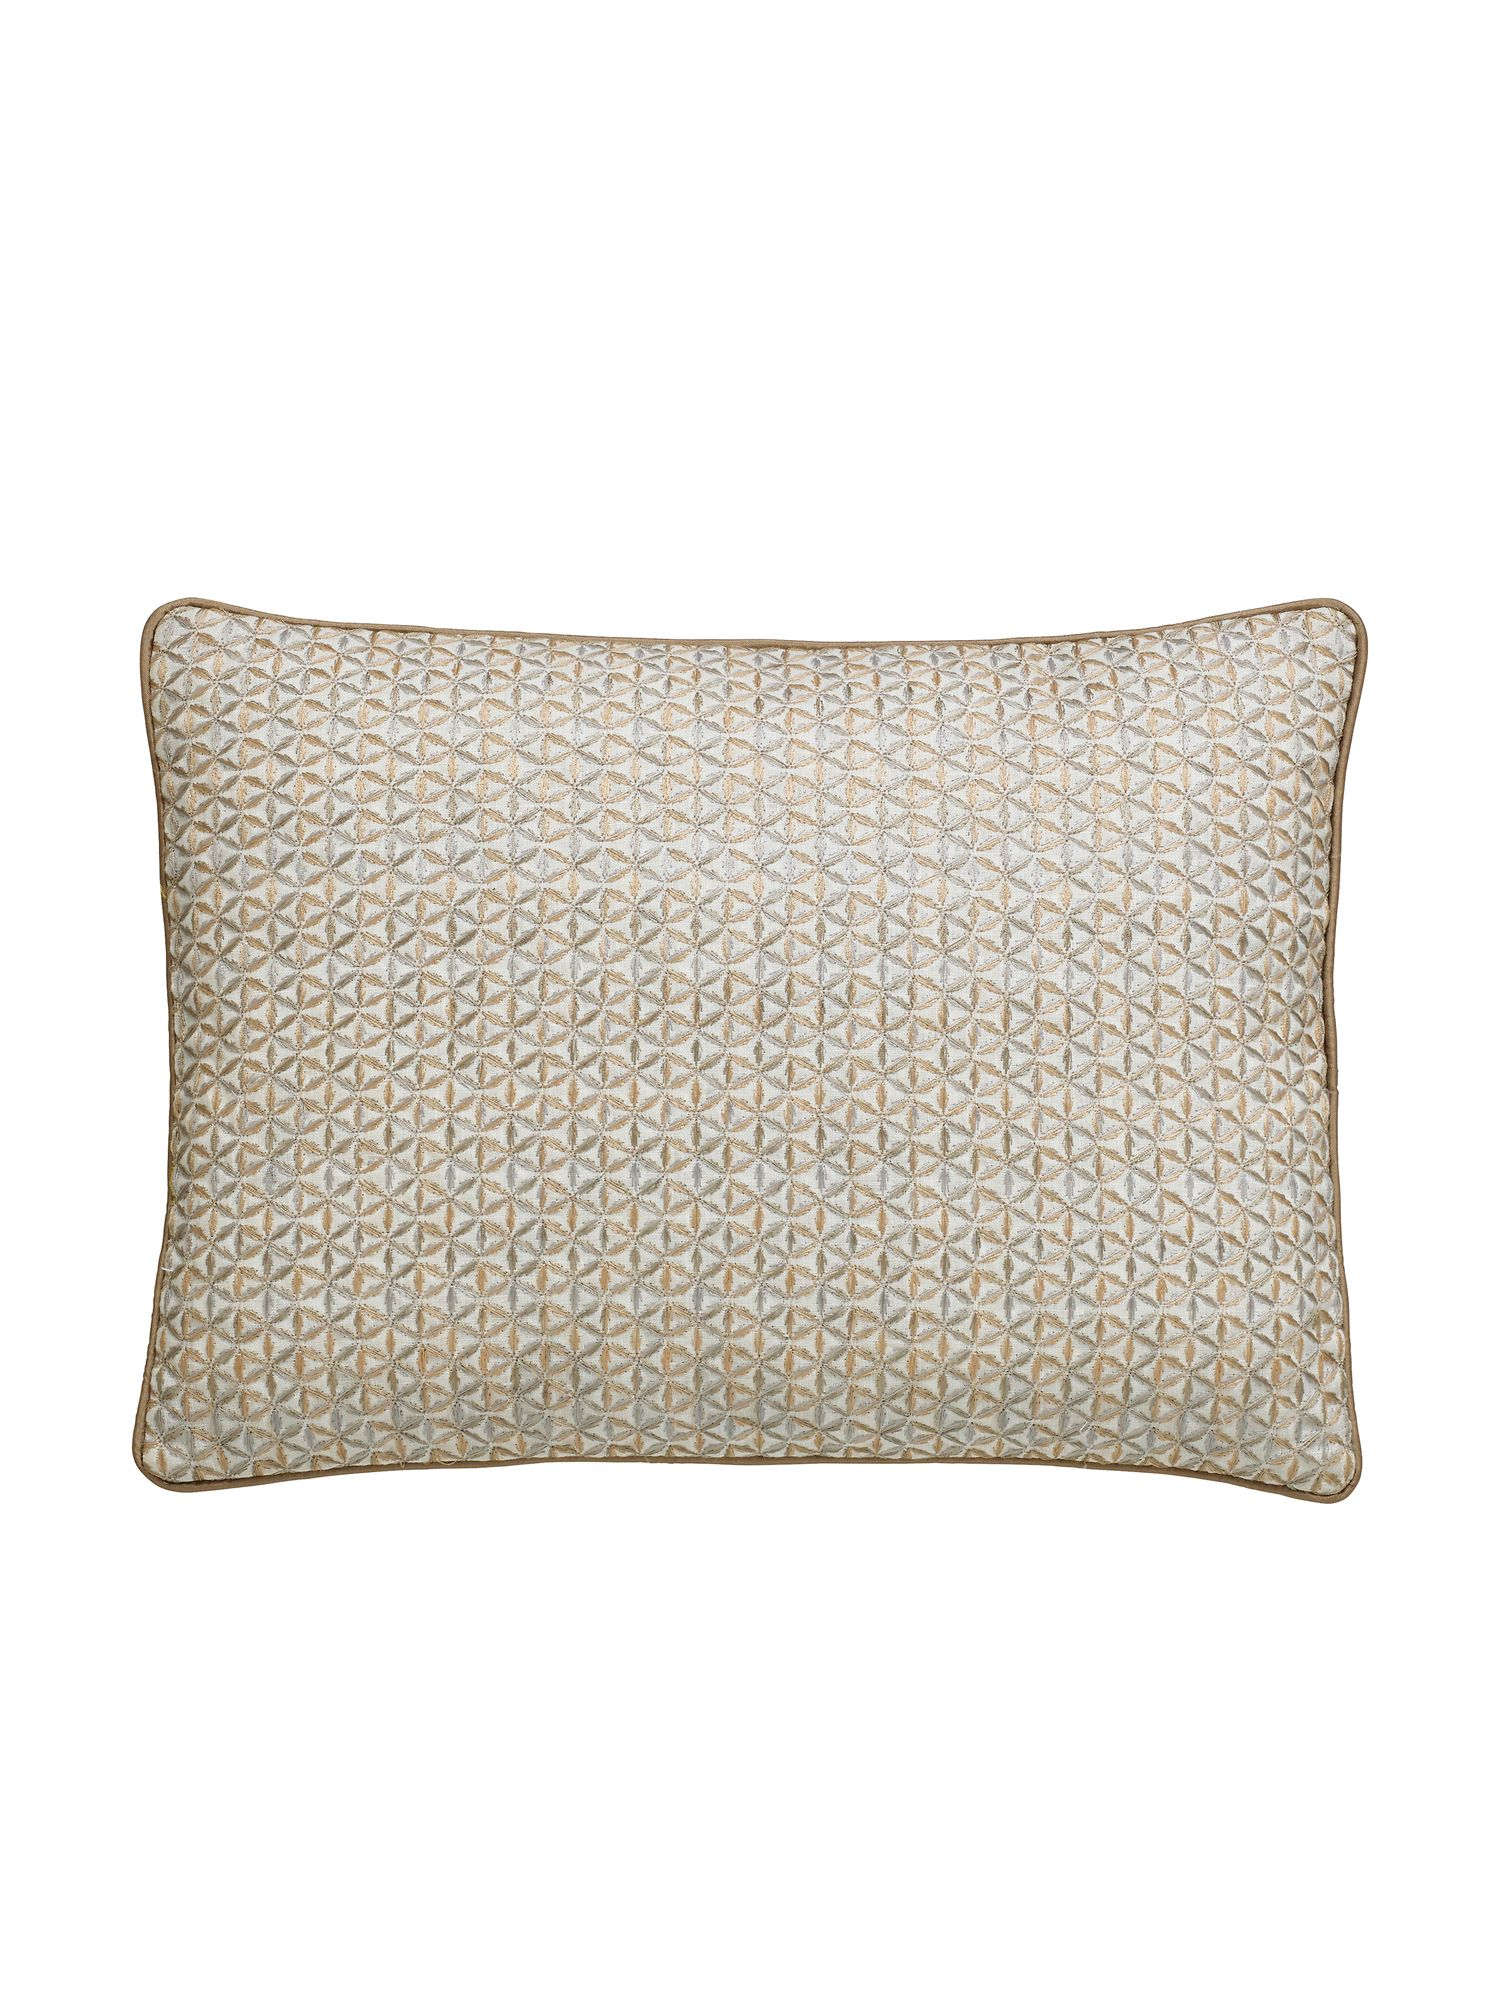 fable tabriz cushion 30x40cm linen review. Black Bedroom Furniture Sets. Home Design Ideas